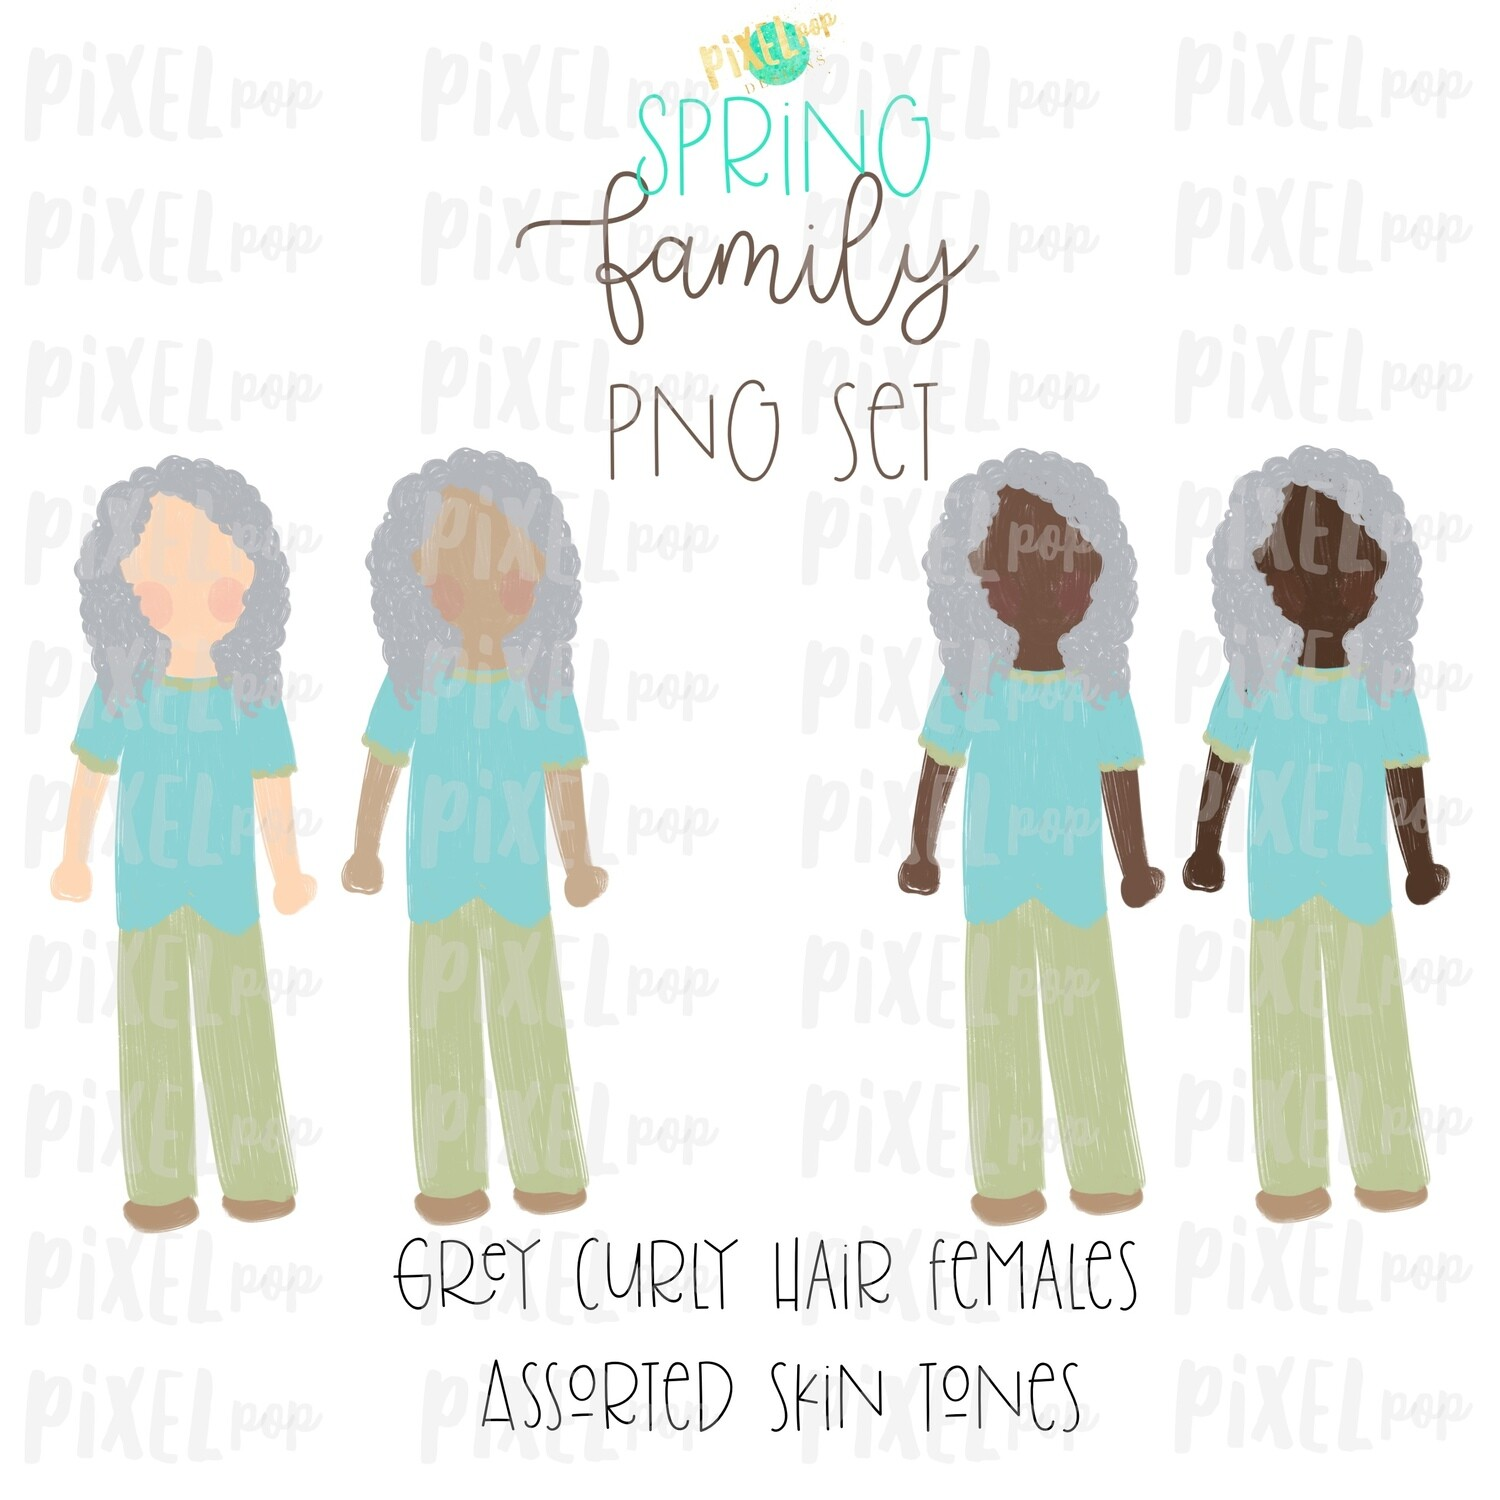 SPRING Grey Haired Females Assorted Skin Tones Stick People Figure Family Members Set PNG Sublimation   Family   Portrait